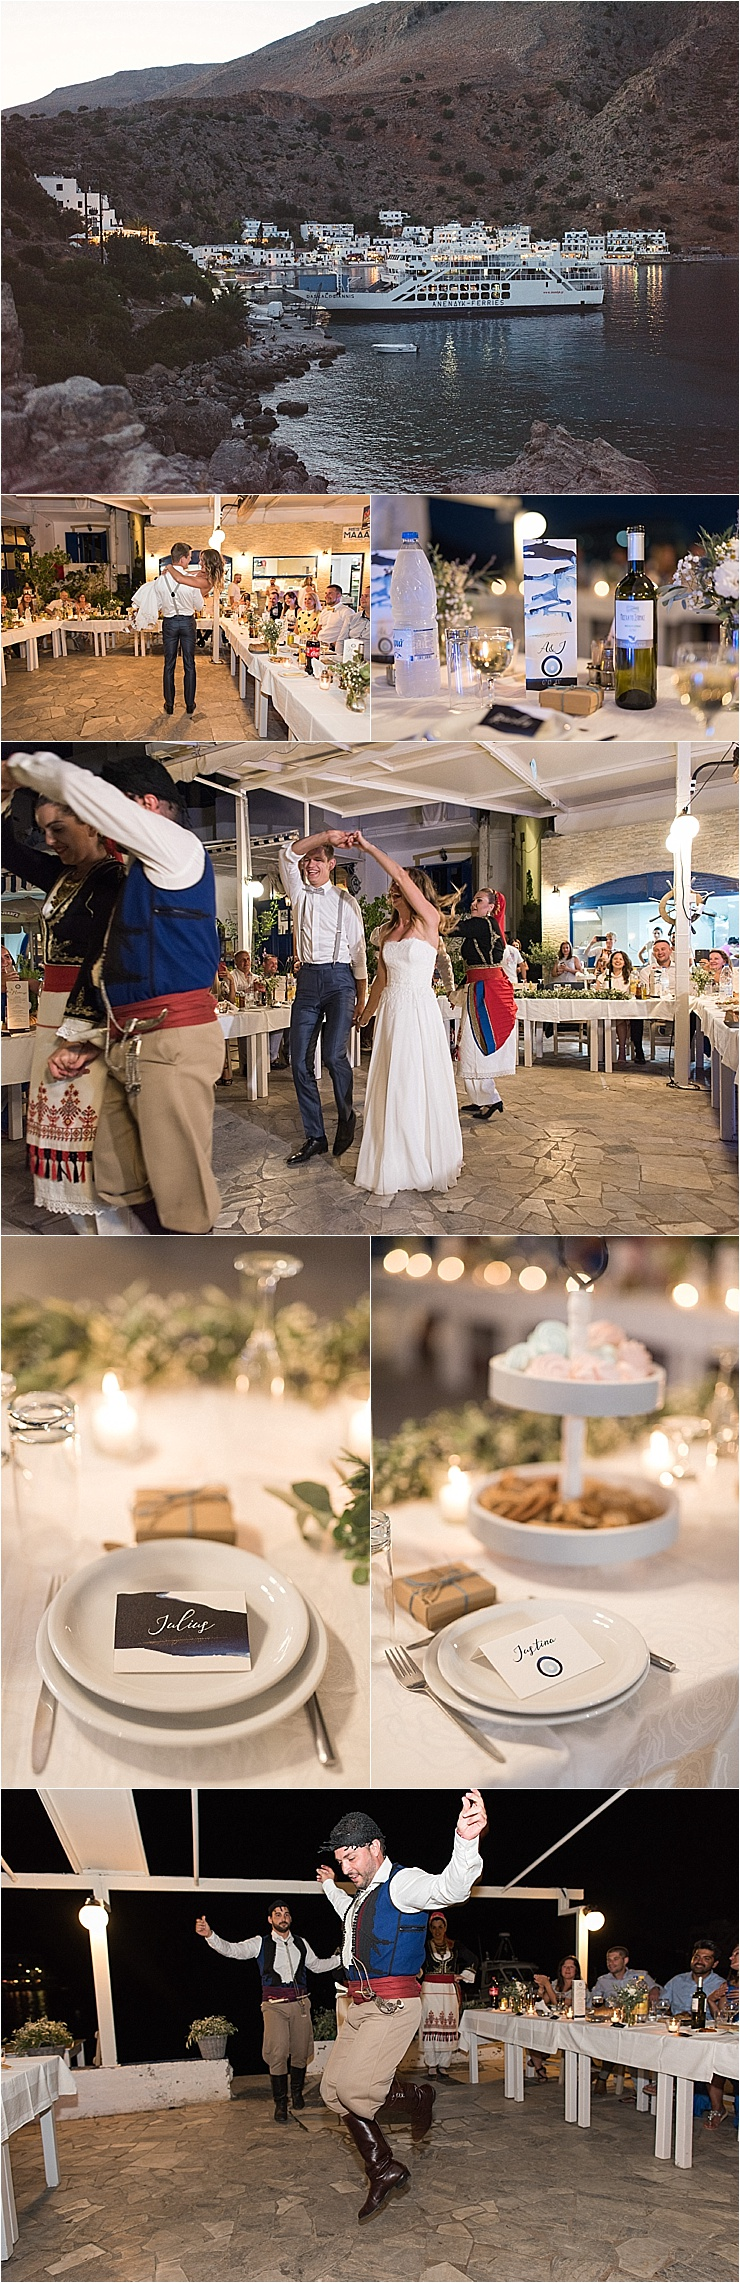 A Cretan themed wedding reception in Crete by Andreas Markakis Photography